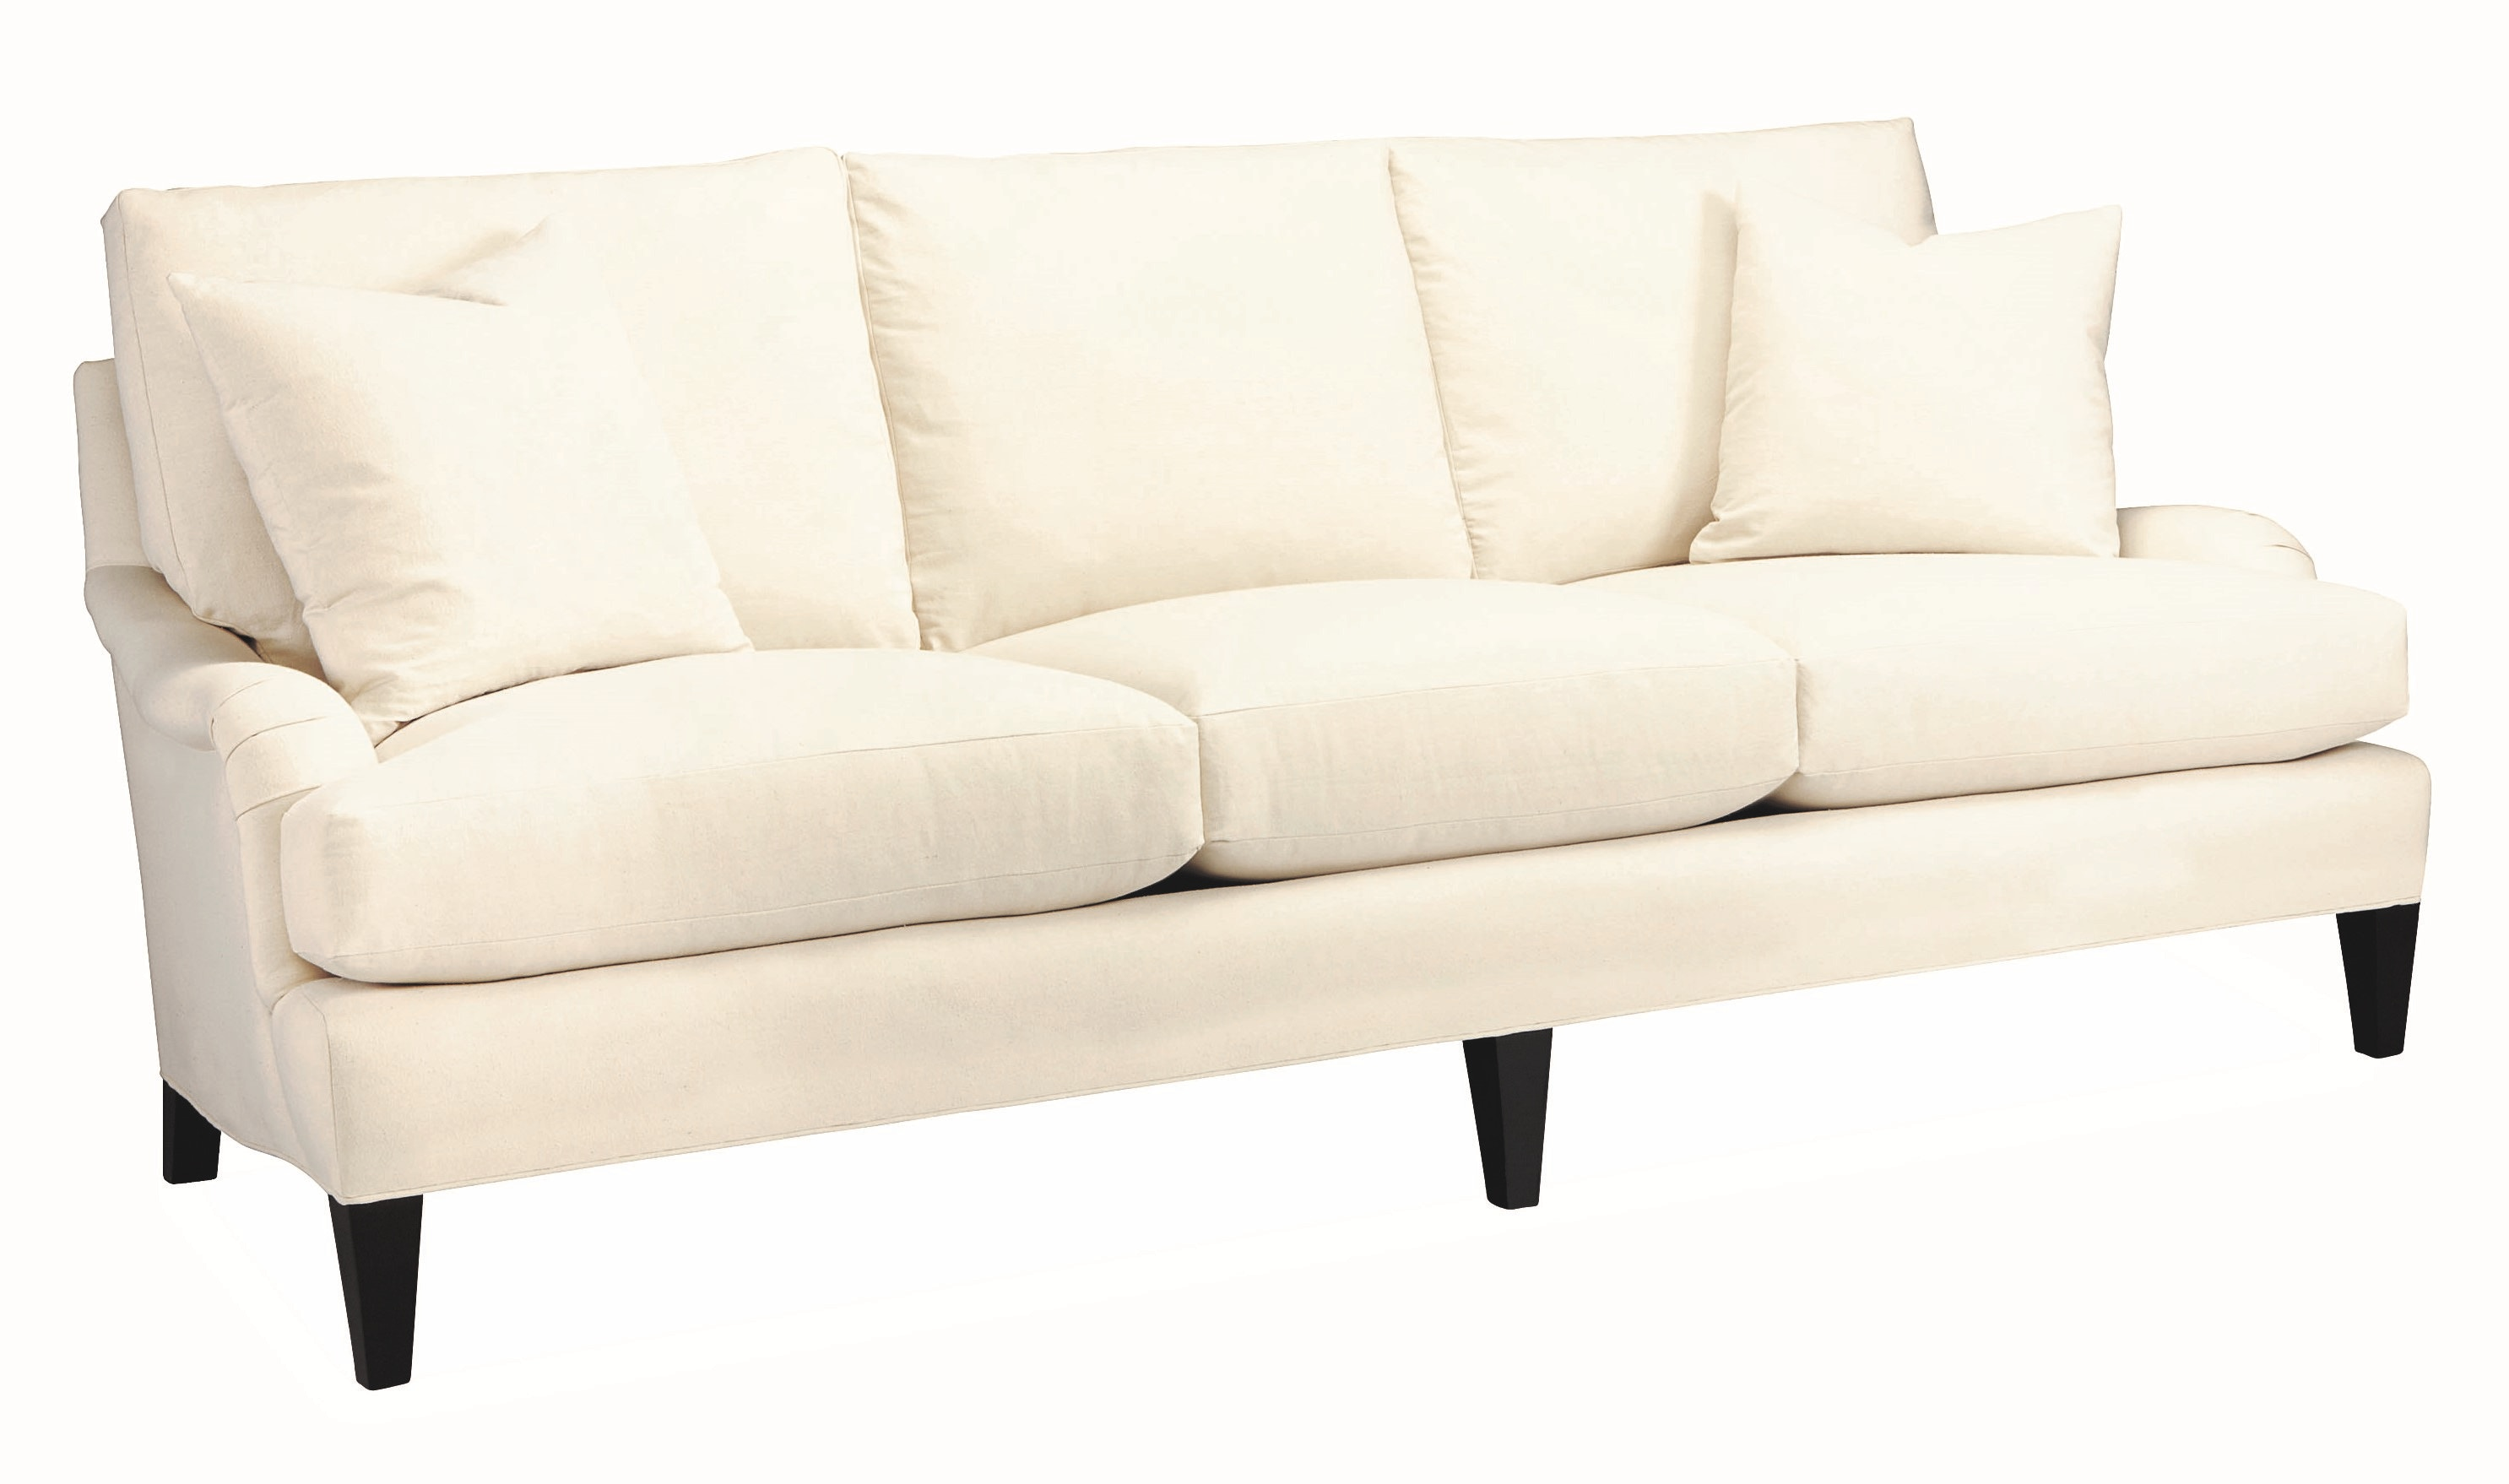 Beau Lee Industries Sofa 1563 03